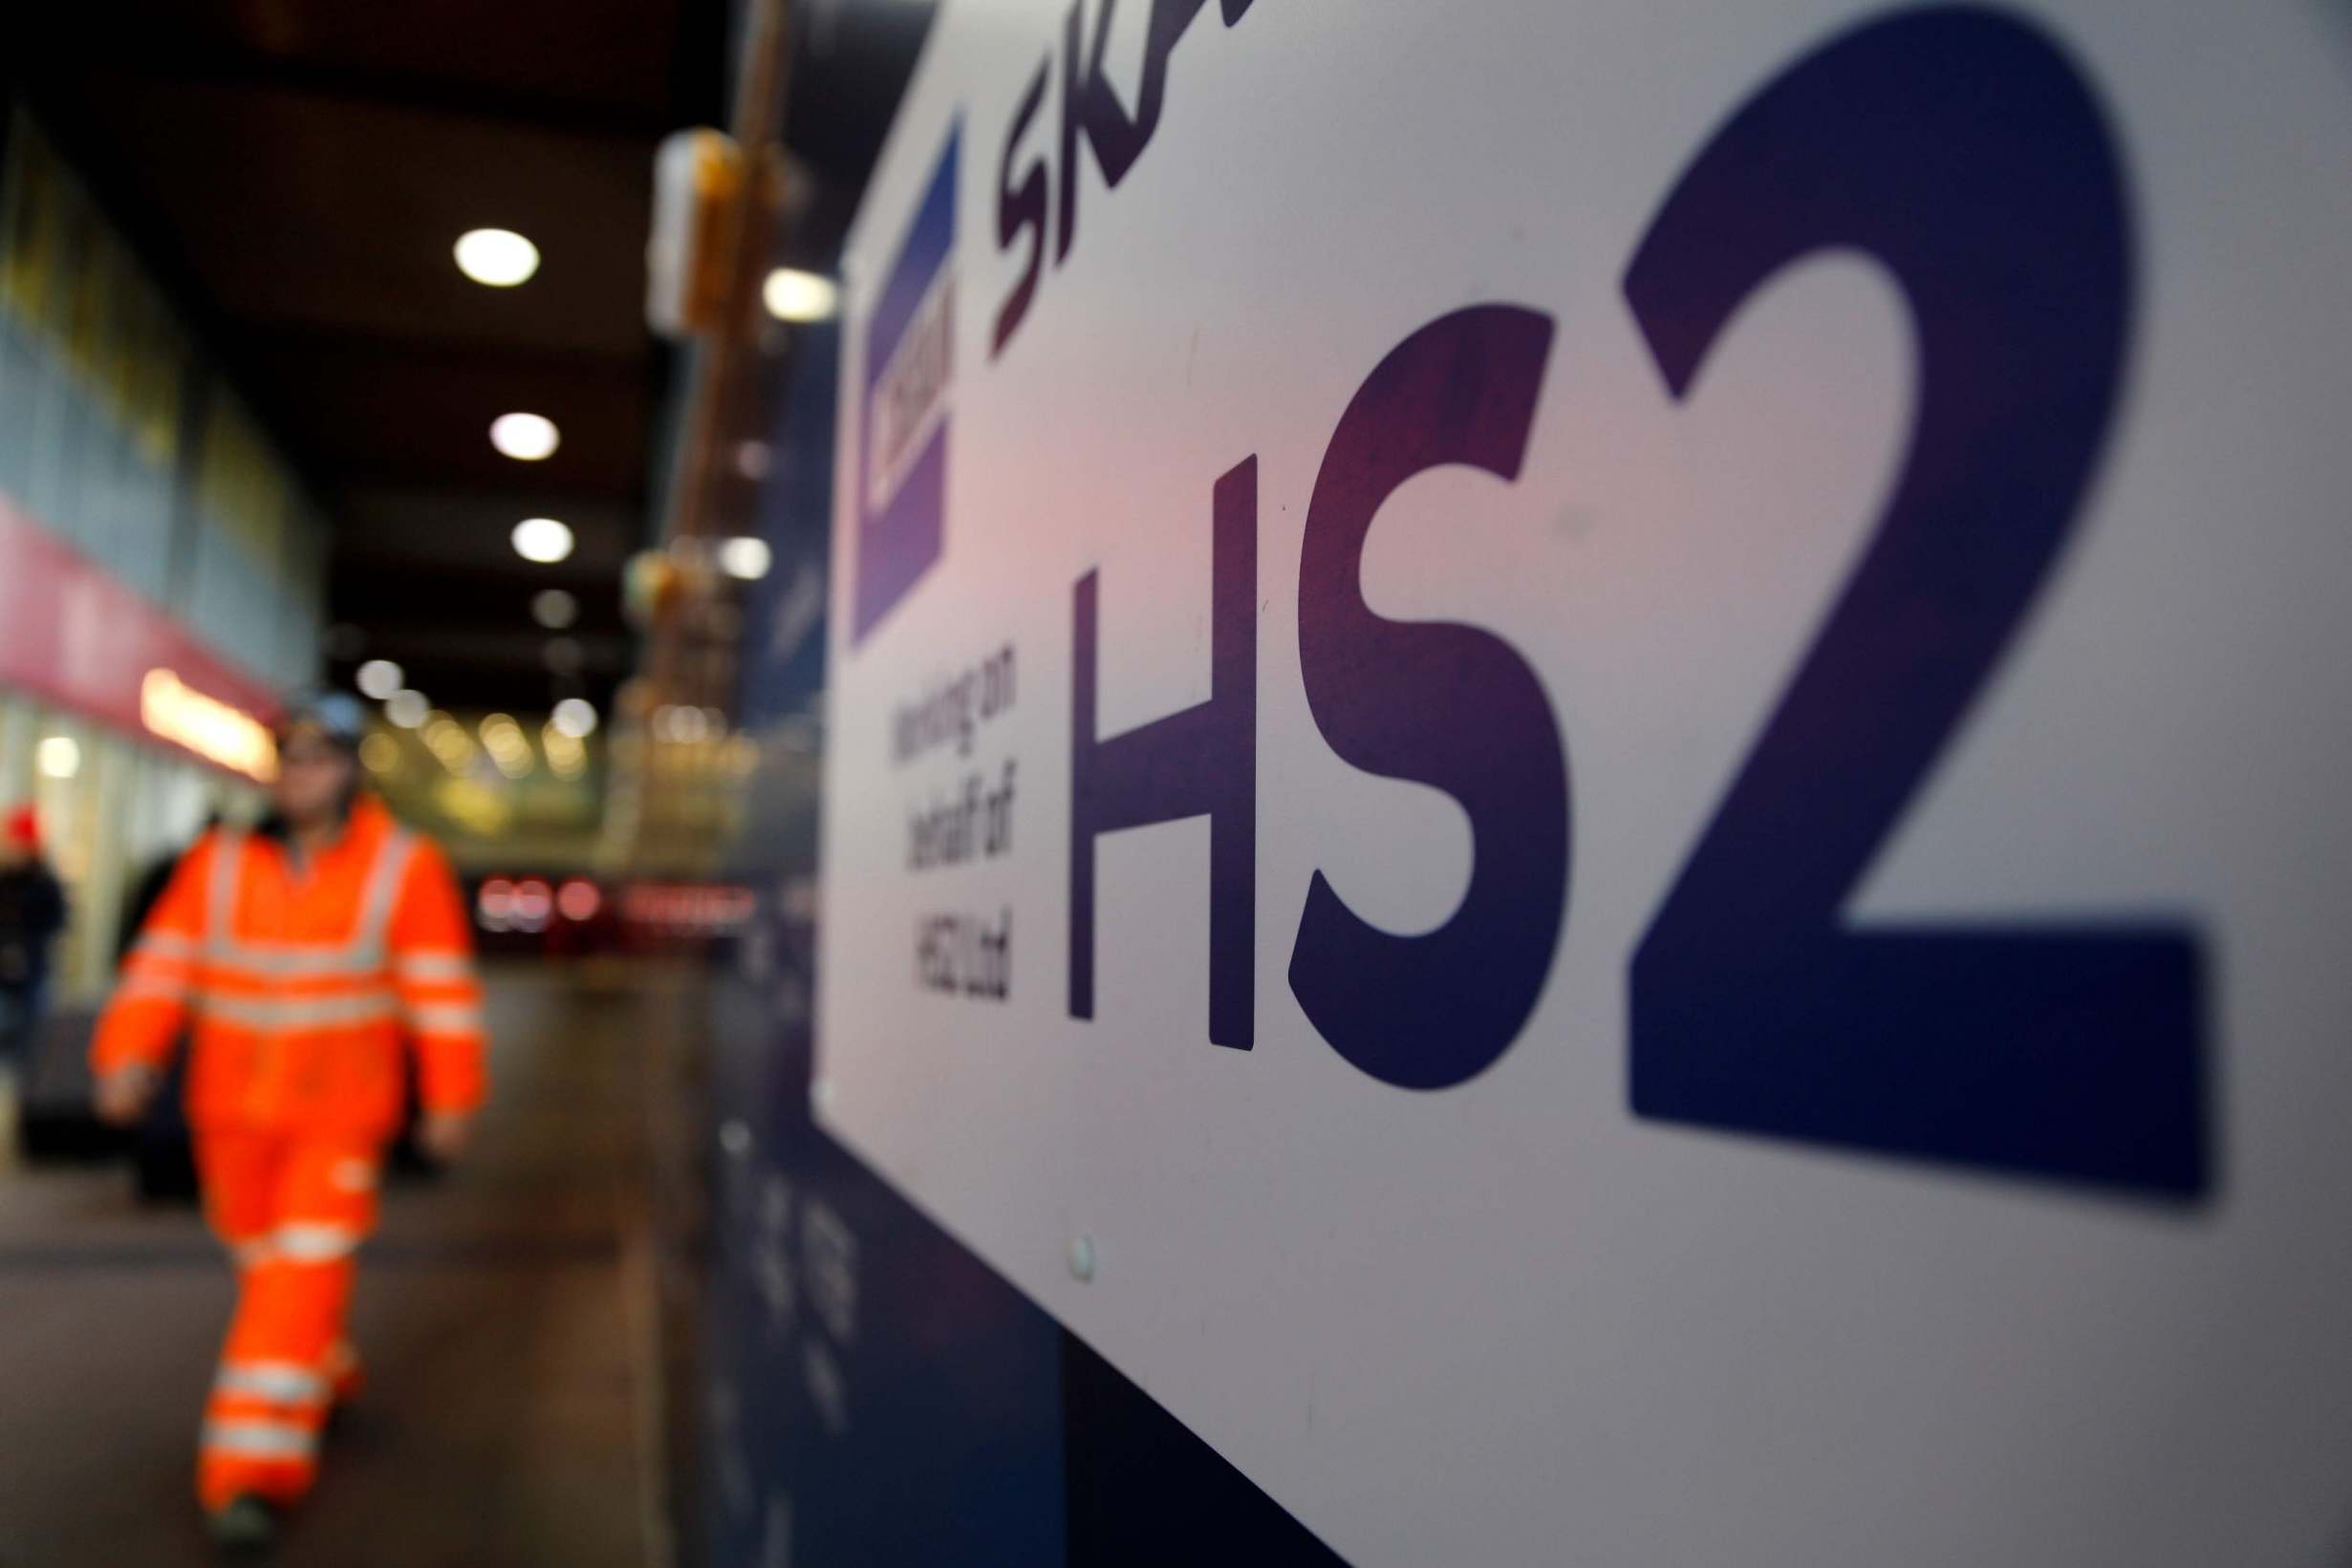 Minister leads call for East Midlands businesses to bid for work on HS2